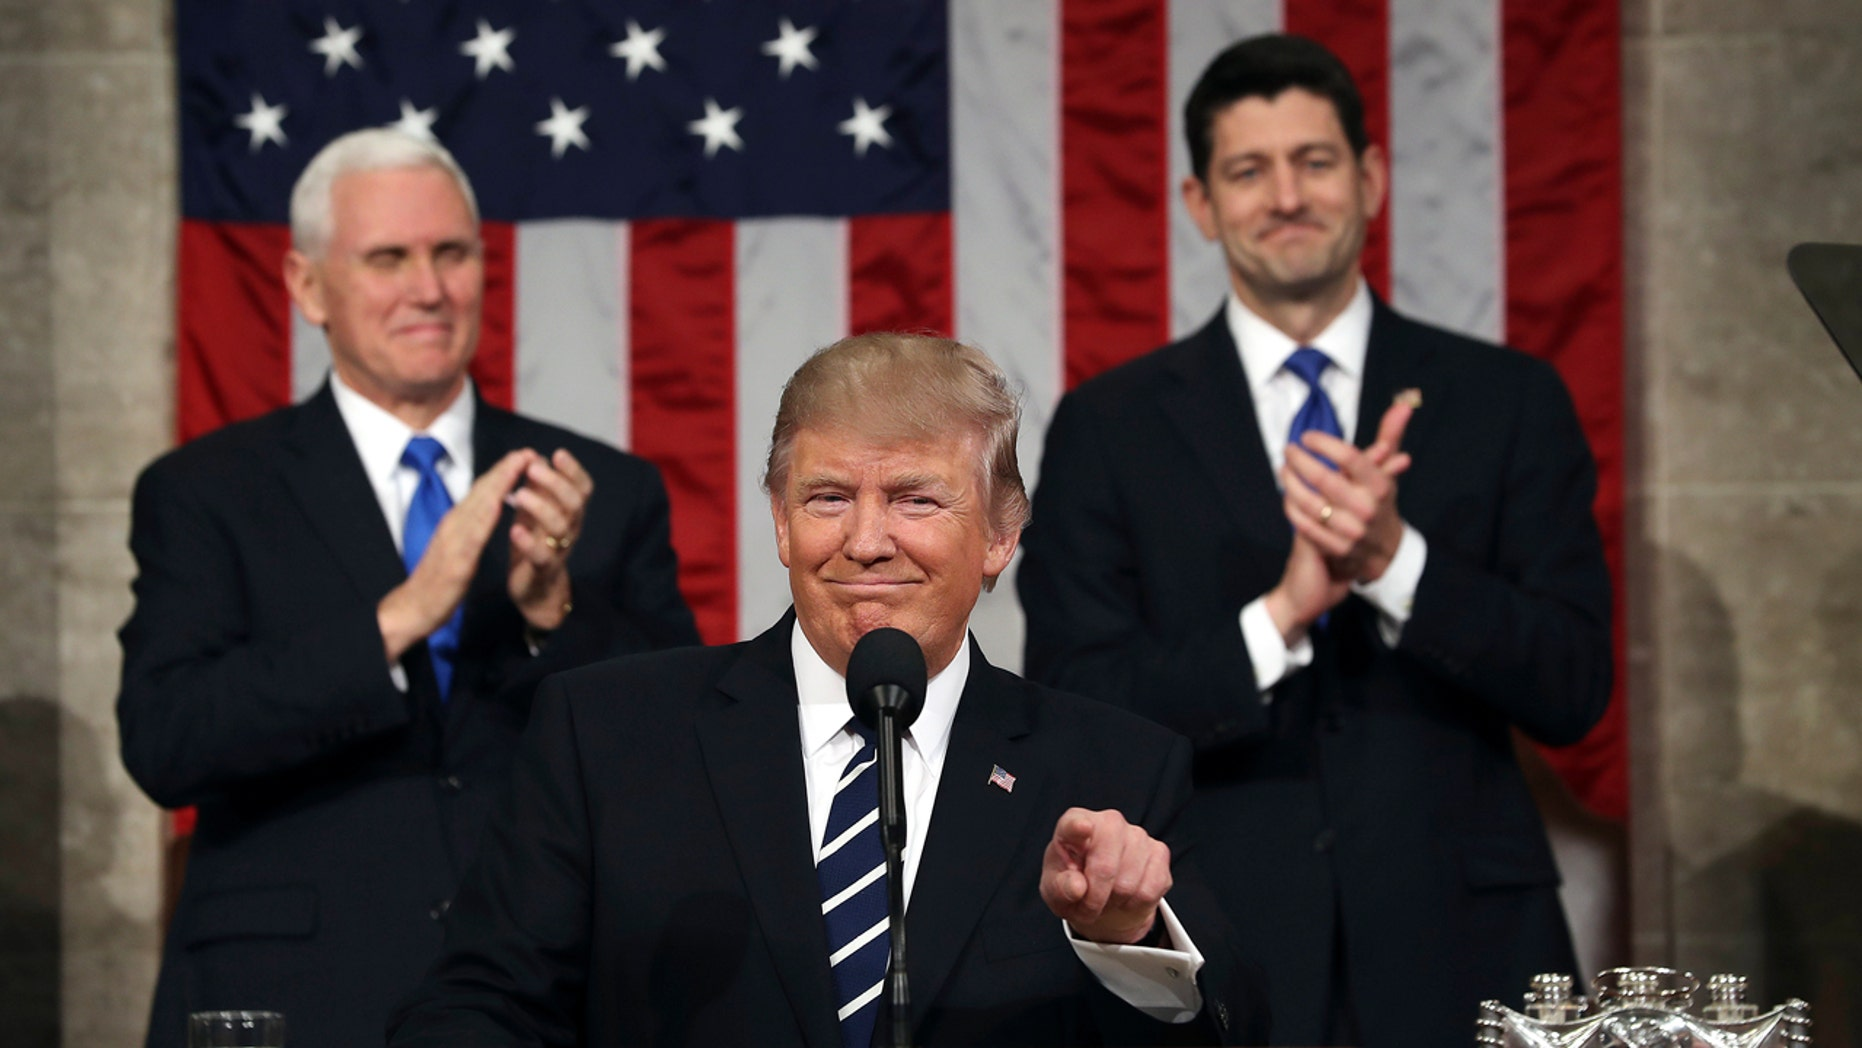 President Donald Trump, flanked by Vice President Mike Pence and House Speaker Paul Ryan of Wis., gestures on Capitol Hill in Washington, Tuesday, Feb. 28, 2017, before his address to a joint session of Congress. (Jim Lo Scalzo/Pool Image via AP)